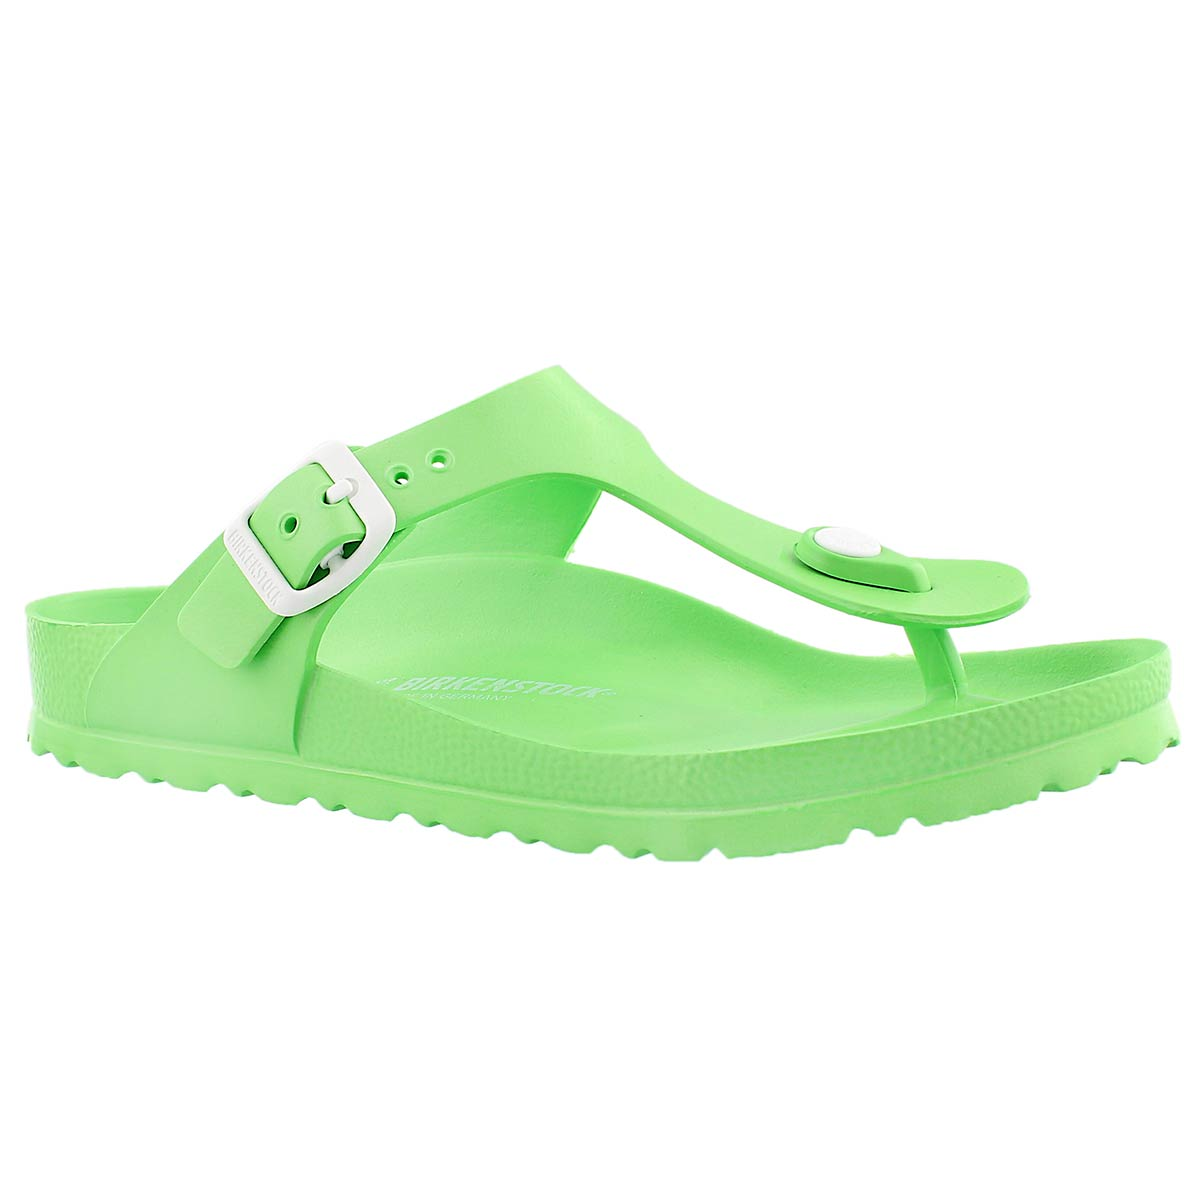 Women's GIZEH EVA neon green thong sandals